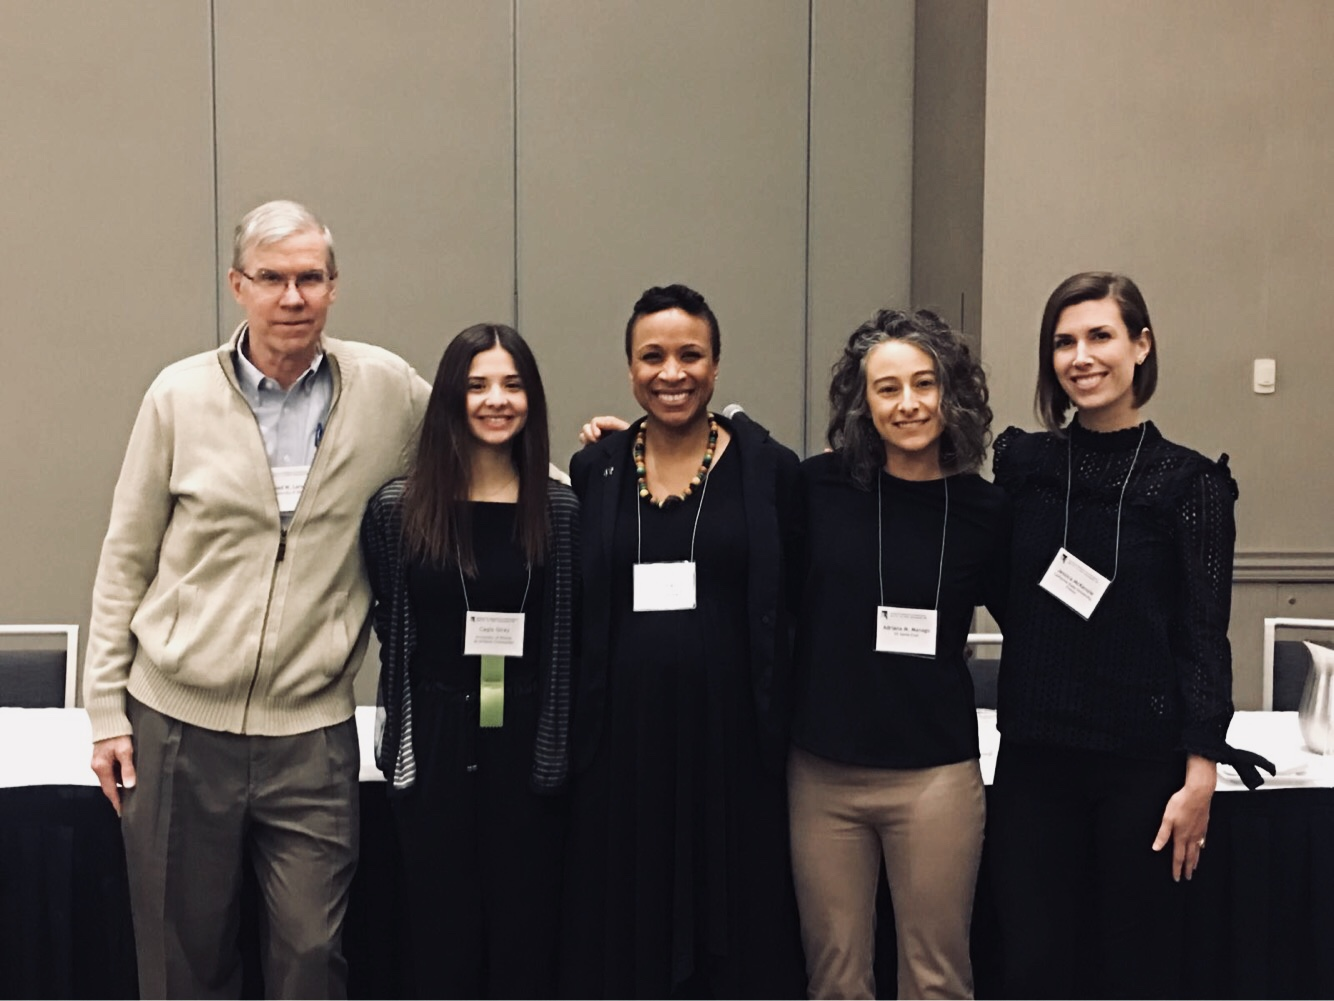 After Globalization and Media Use Among Global Youth symposium (with presentations from Dr. Ferguson, Dr. Manago, Dr. McKenzie, and Cagla Giray, and discussion led by Dr. Larson).  L-R: Dr. Reed Larson (UIUC), Cagla Giray (UIUC), Dr. Gail Ferguson (UIUC), Dr. Adriana Manago (UCSC), & Dr. Jessica McKenzie